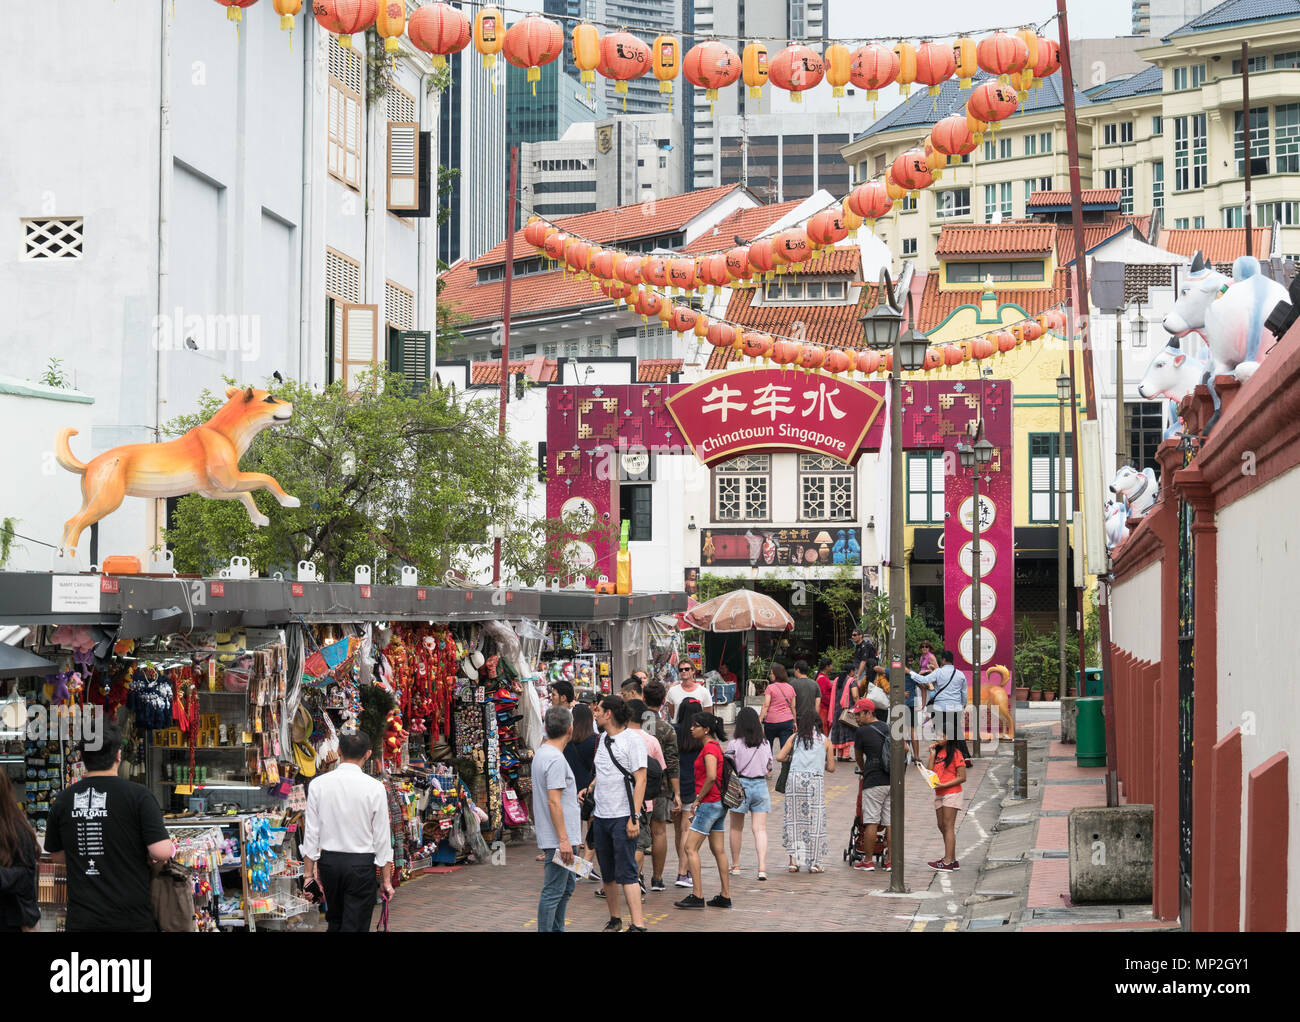 Singapore - April 23 2018: Tourists strolling around the various souvenir market stalls in Singapore Chinatown in Southeast Asia. - Stock Image